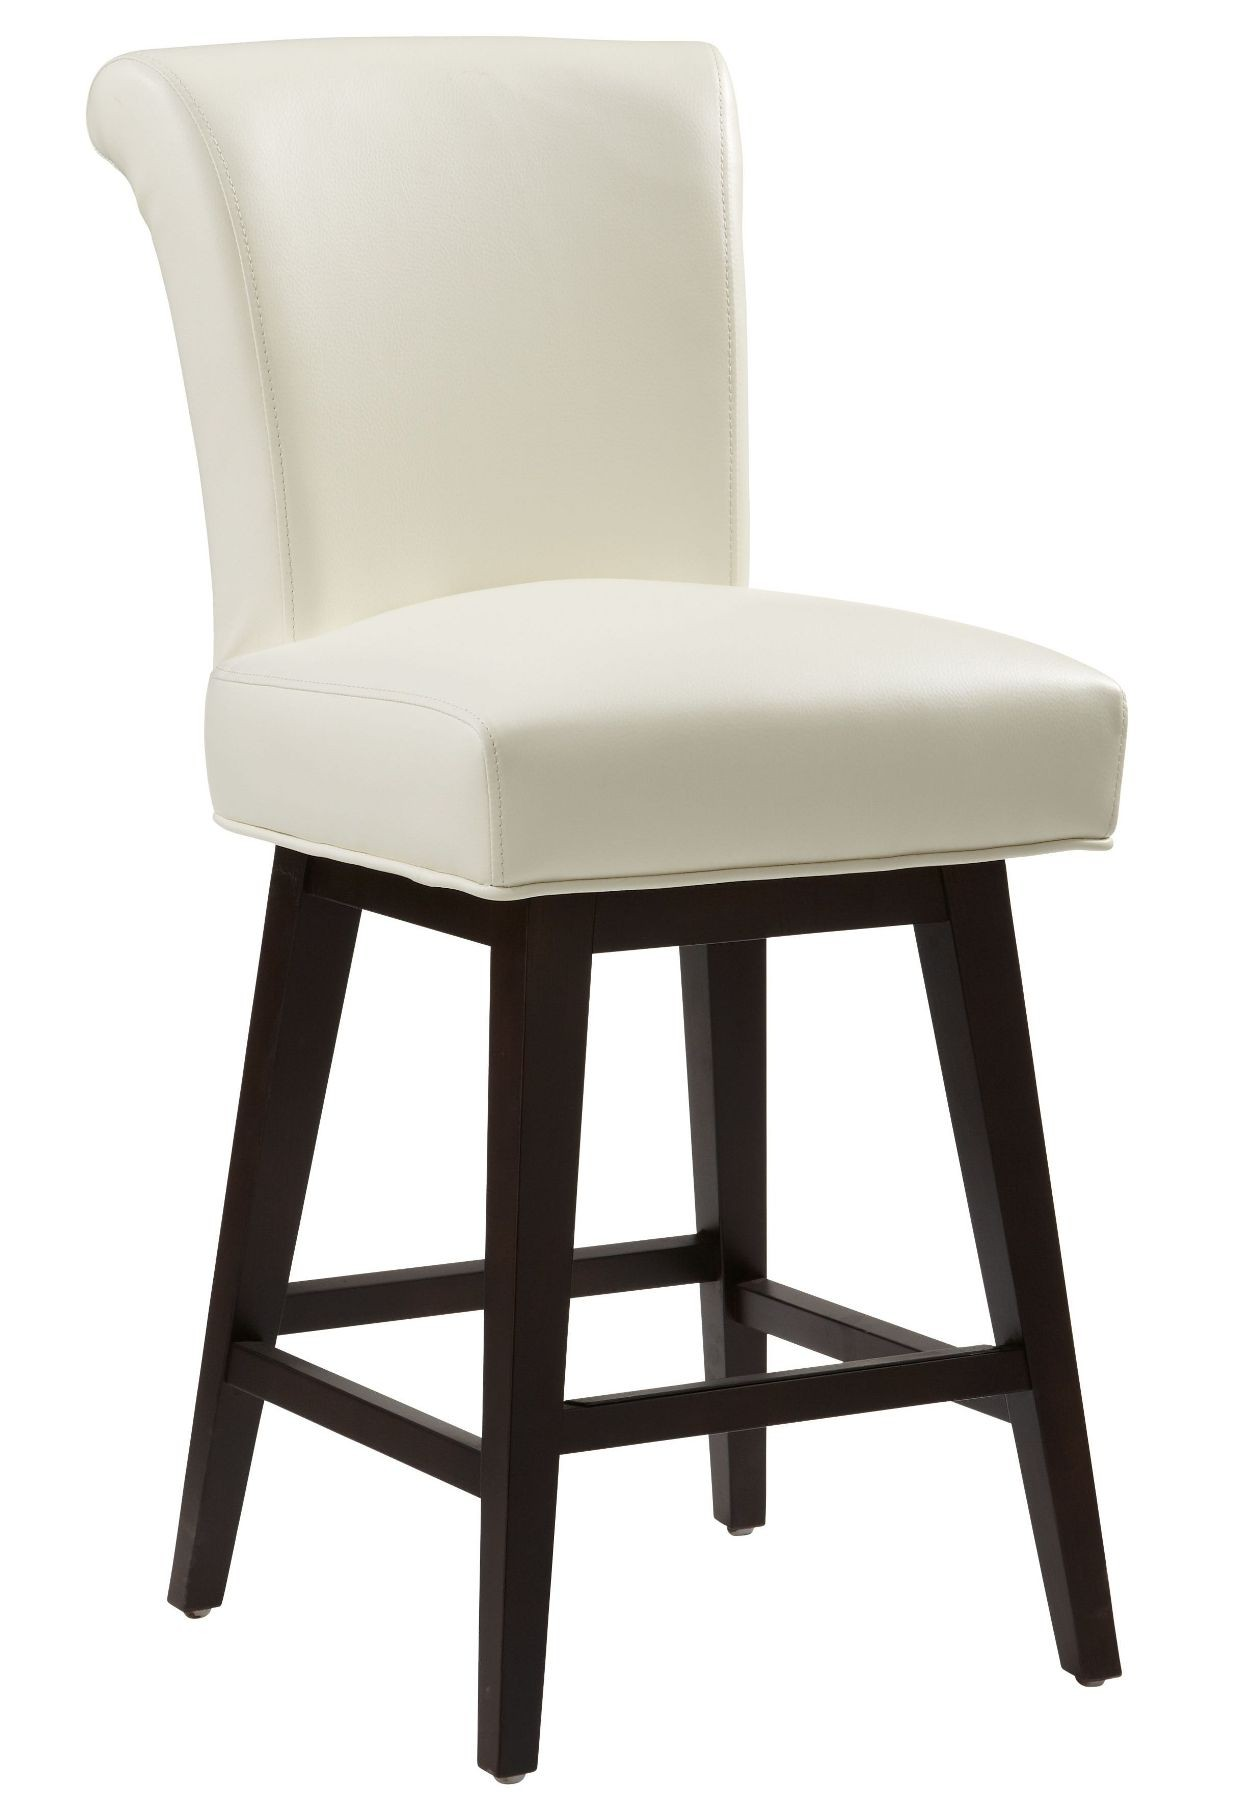 Hamlet Ivory Swivel Counter Stool from Sunpan 74926  : 74926hamletcstoolivoryf from colemanfurniture.com size 1240 x 1800 jpeg 123kB